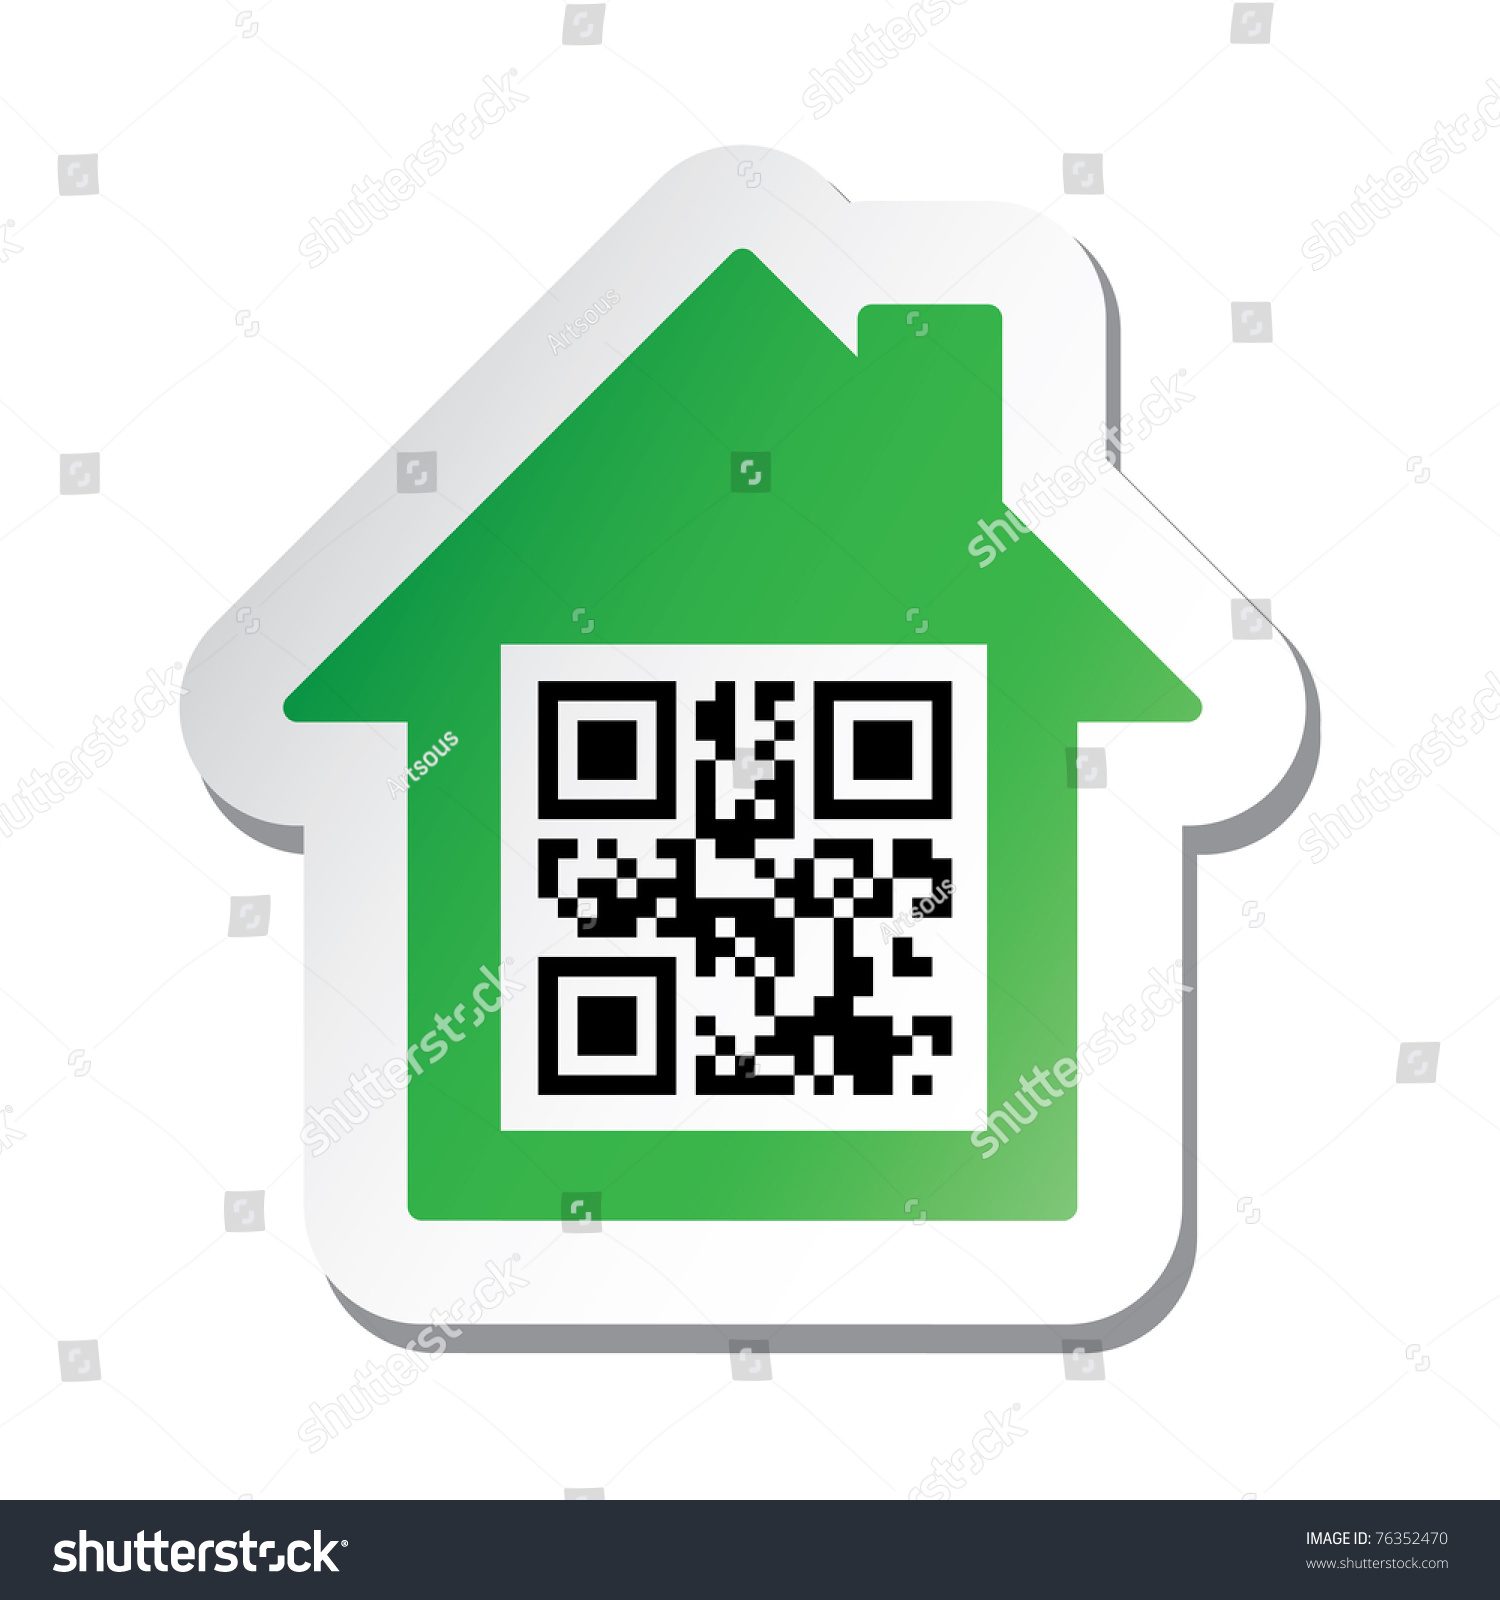 Z Homes For Sale Stock Vector Real Estate Signboard Or Sticker With